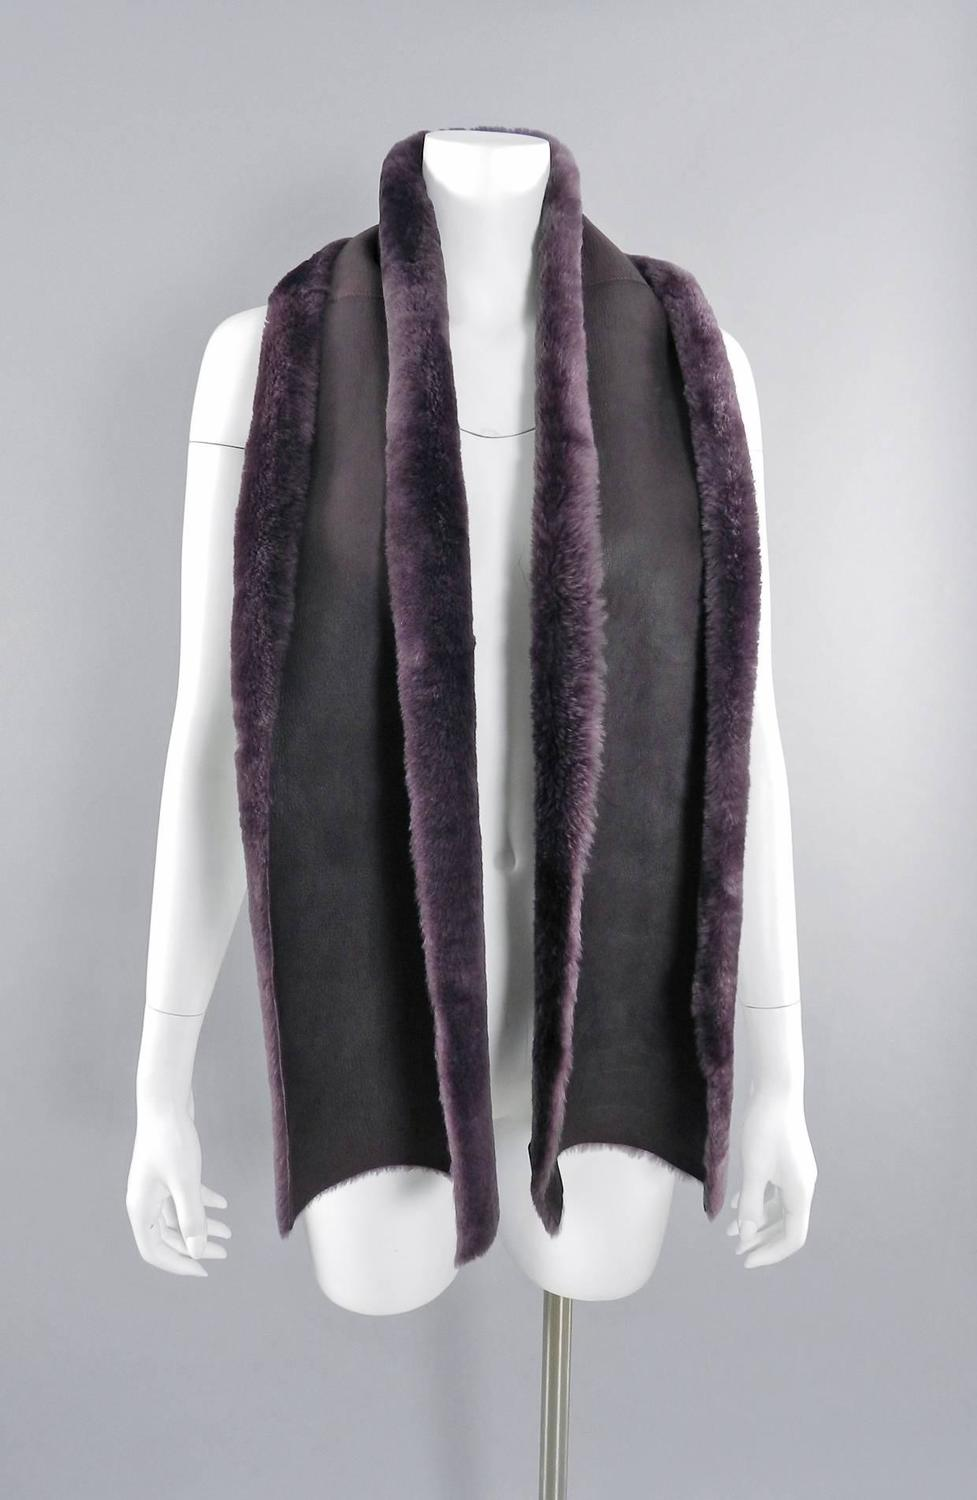 chanel purple shearling scarf for sale at 1stdibs